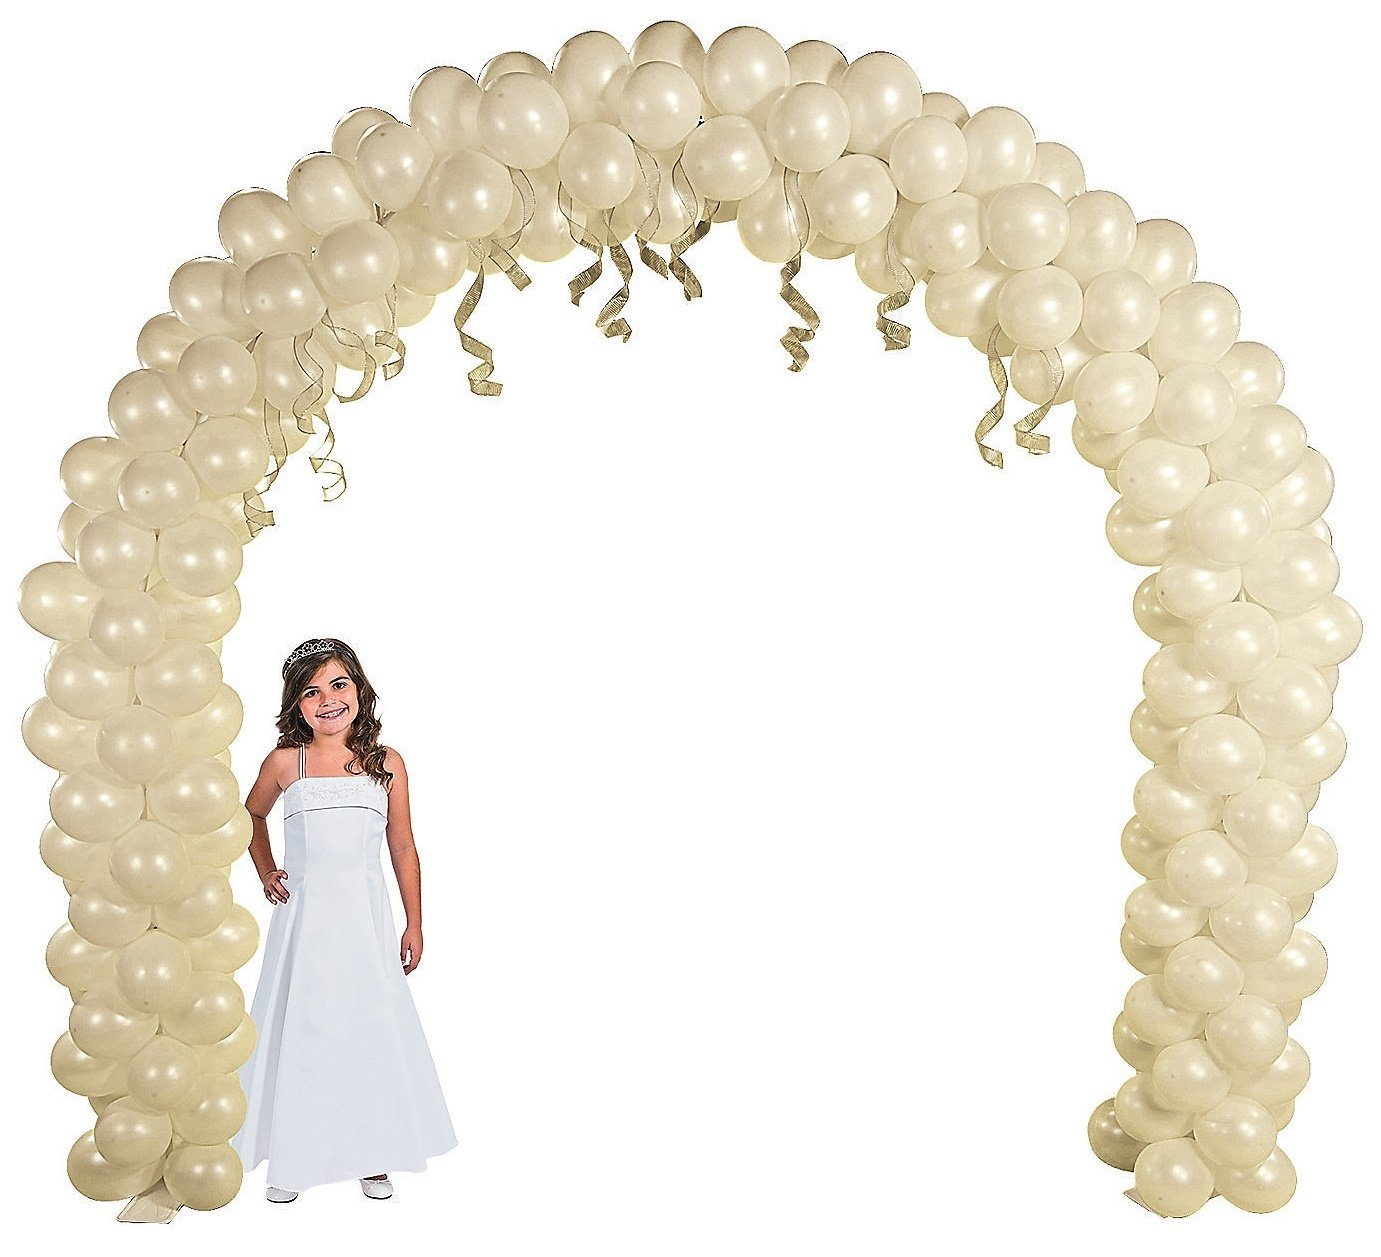 Balloon Frame - Arch (8 Ft. X 9 Ft.) 100 Balloons to Fill Arch. Weddings, Proms, Bat- Mitzvah, Birthday Party by Fun Express